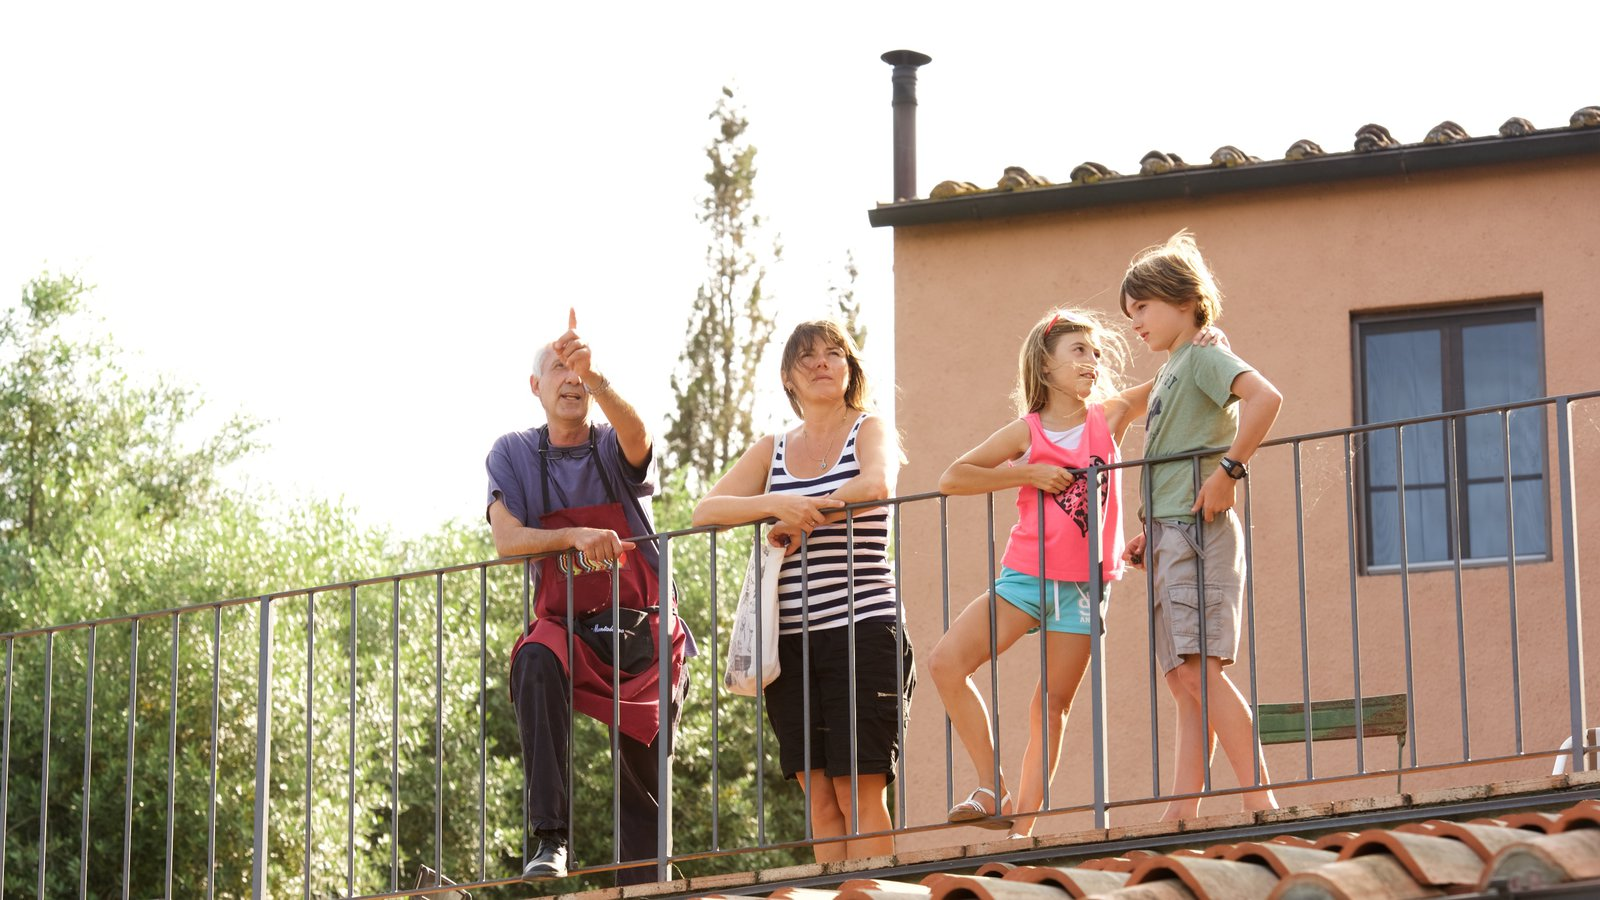 Castellina in Chianti as well as a family